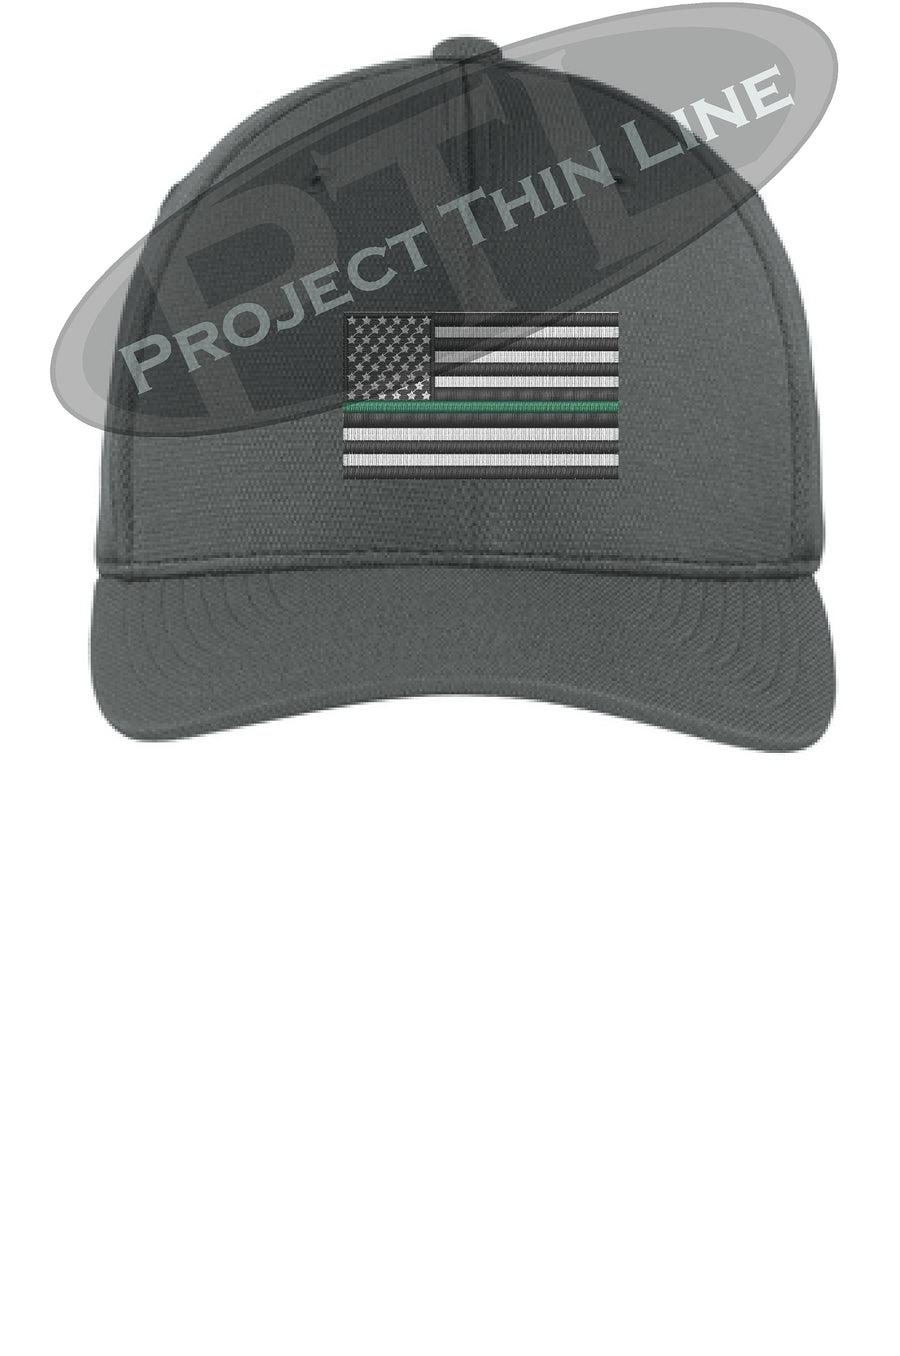 Black Embroidered Thin GREEN Line American Flag Flex Fit Fitted TRUCKER Hat